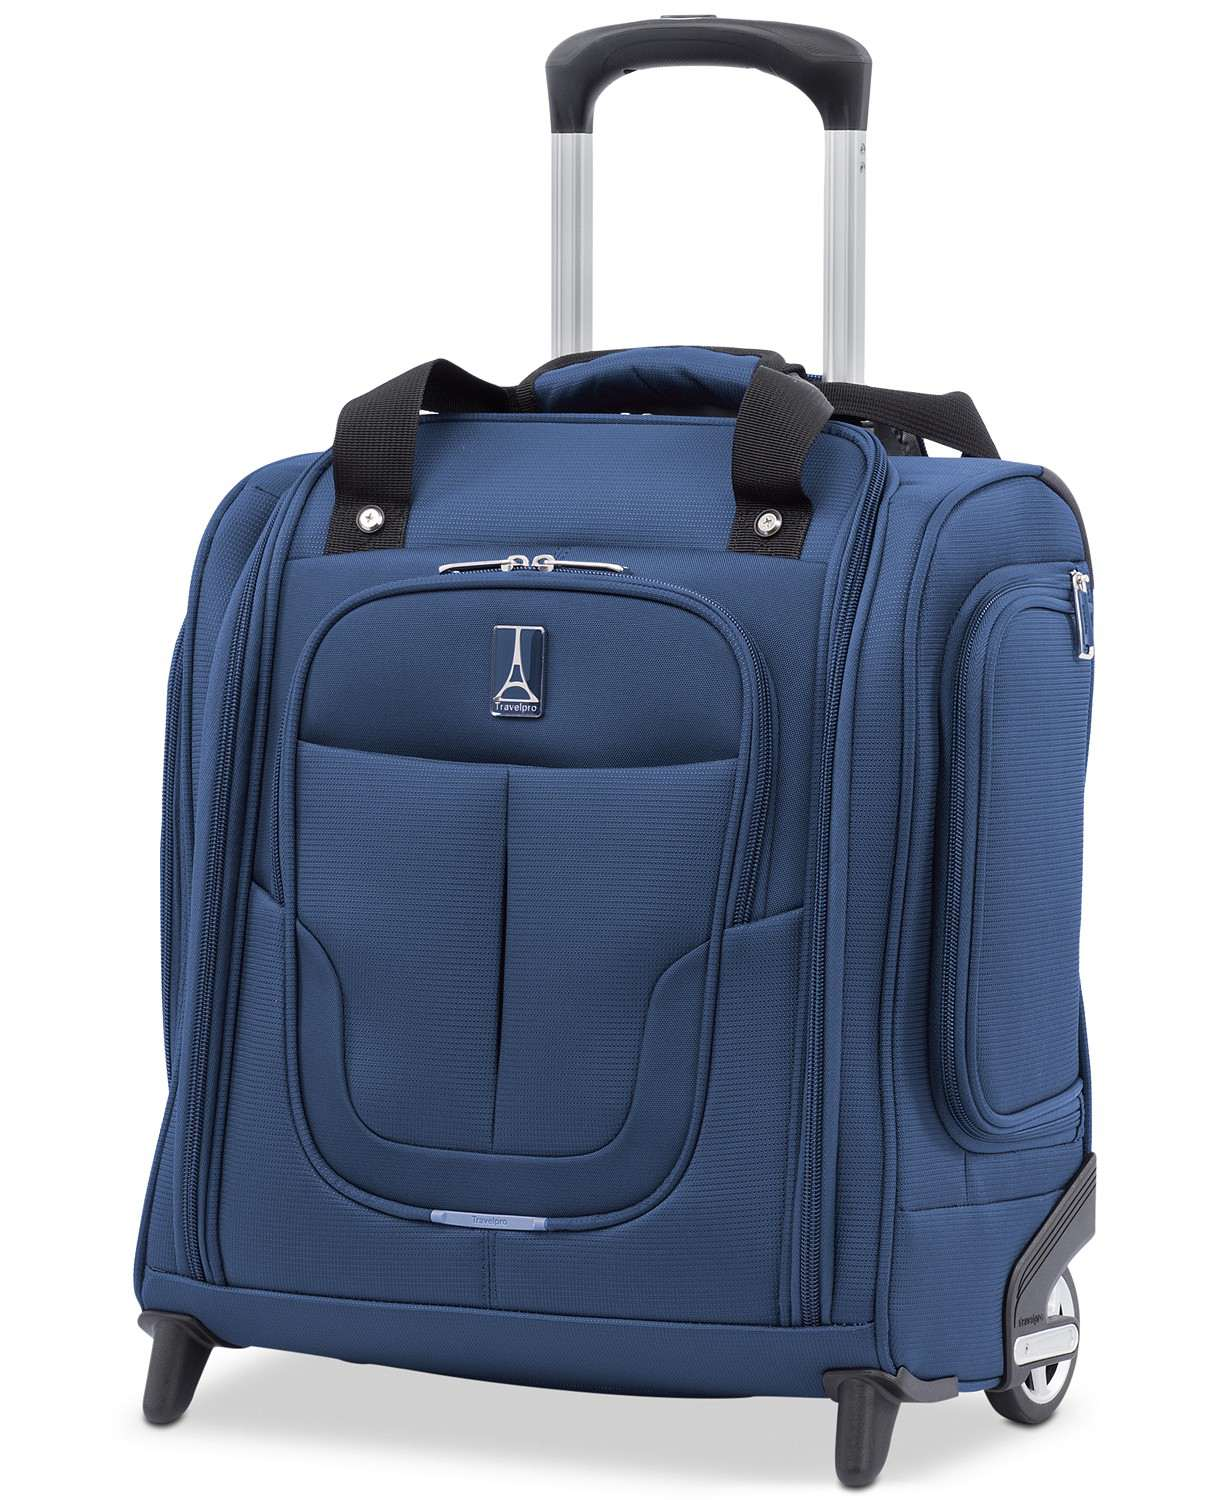 The 8 Best Travelpro Luggage Items of 2019 4eeeefb4b1693